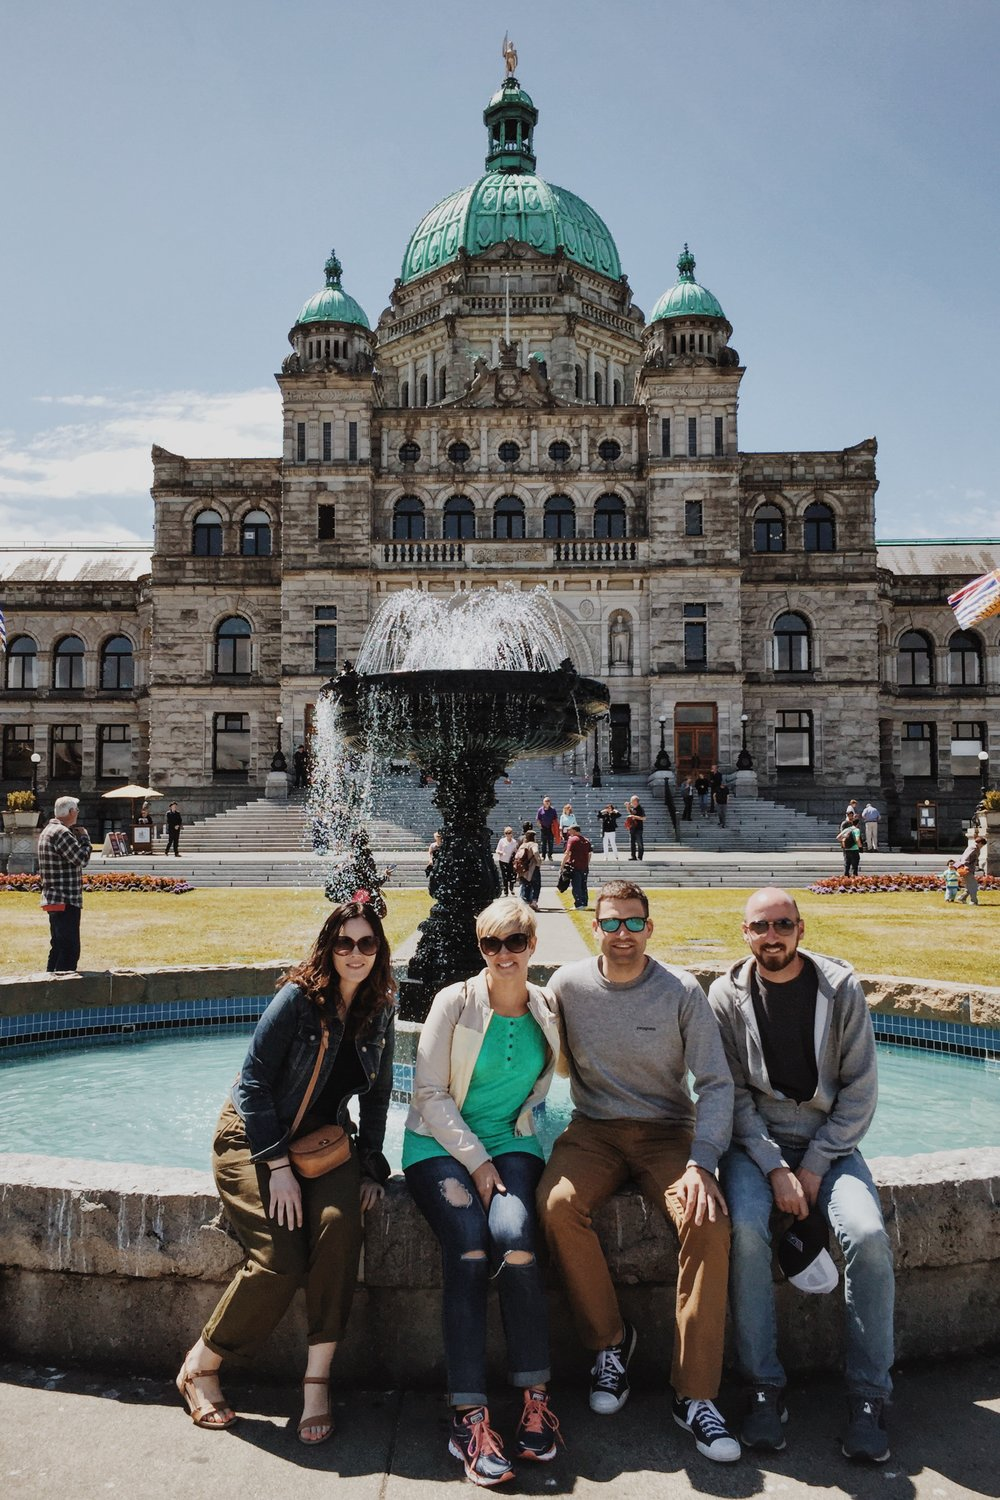 Our little group outside of the British Columbia Parliament